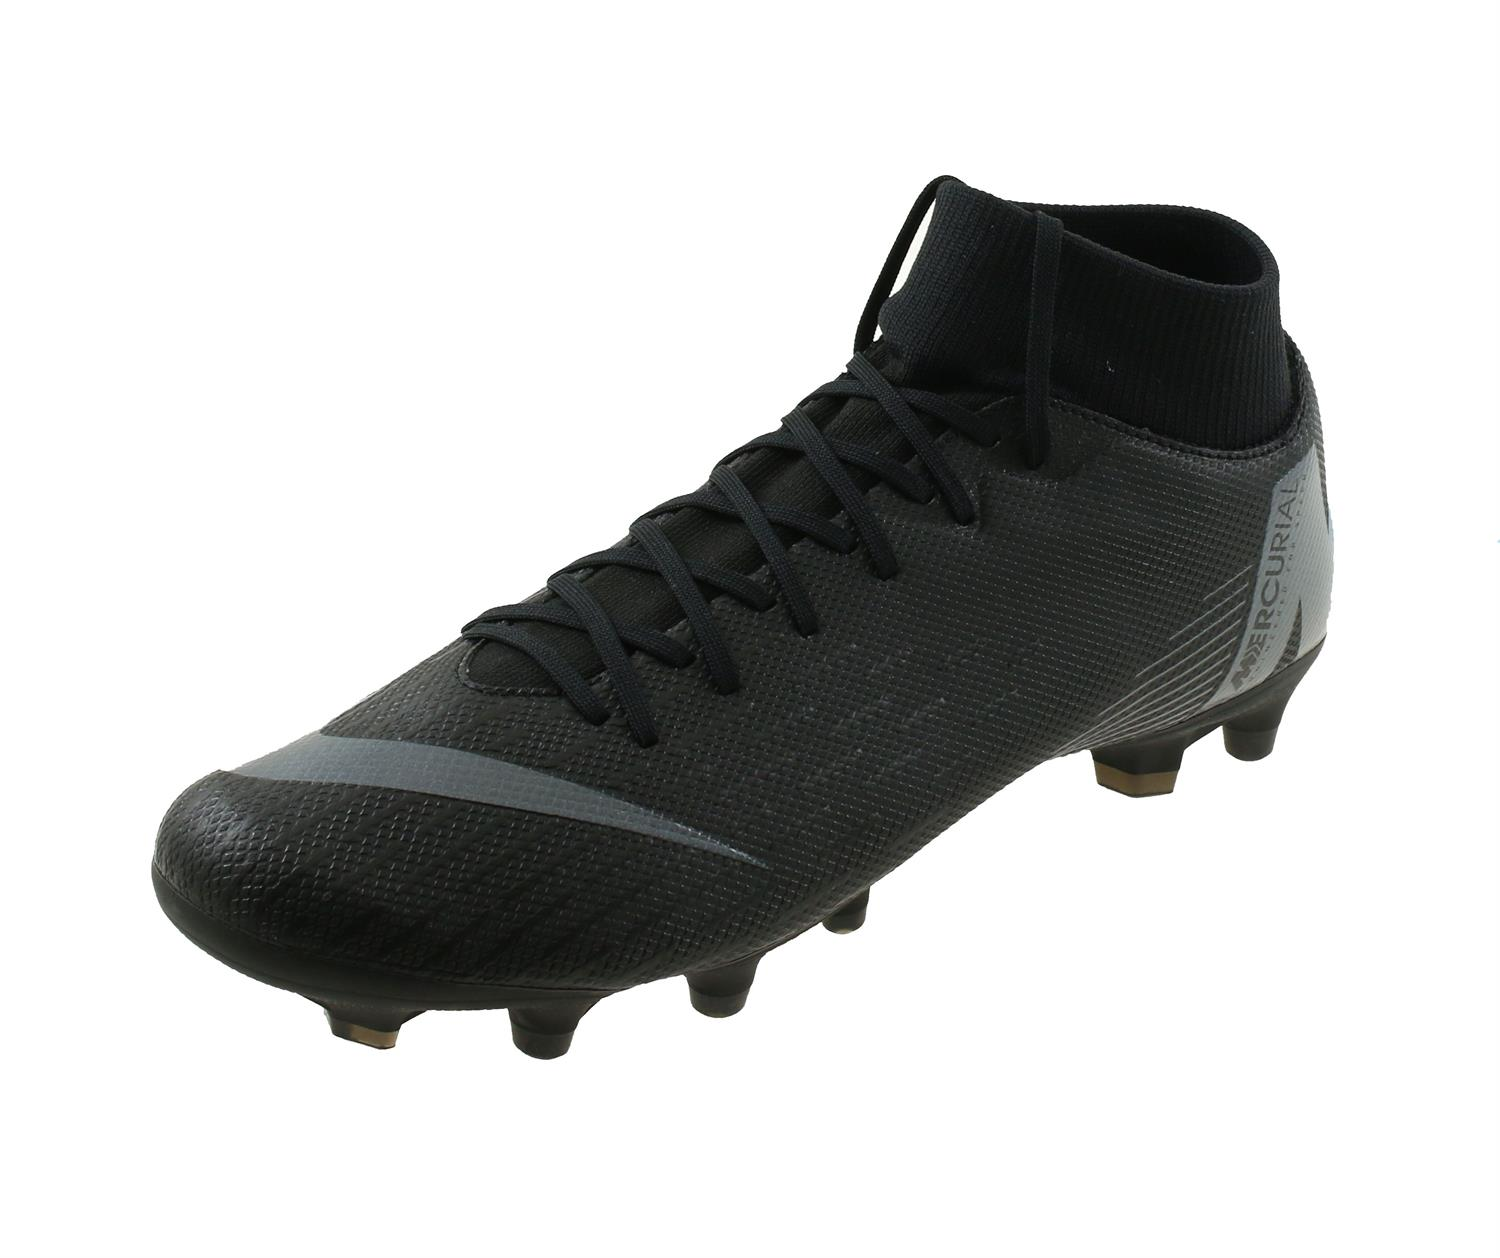 competitive price 69d5f f0122 Nike Mercurial SUPERFLY 6 PRO FG Voetbalschoenen Geel Zwart  Nike Mercurial  Superfly VI Academy MG ...